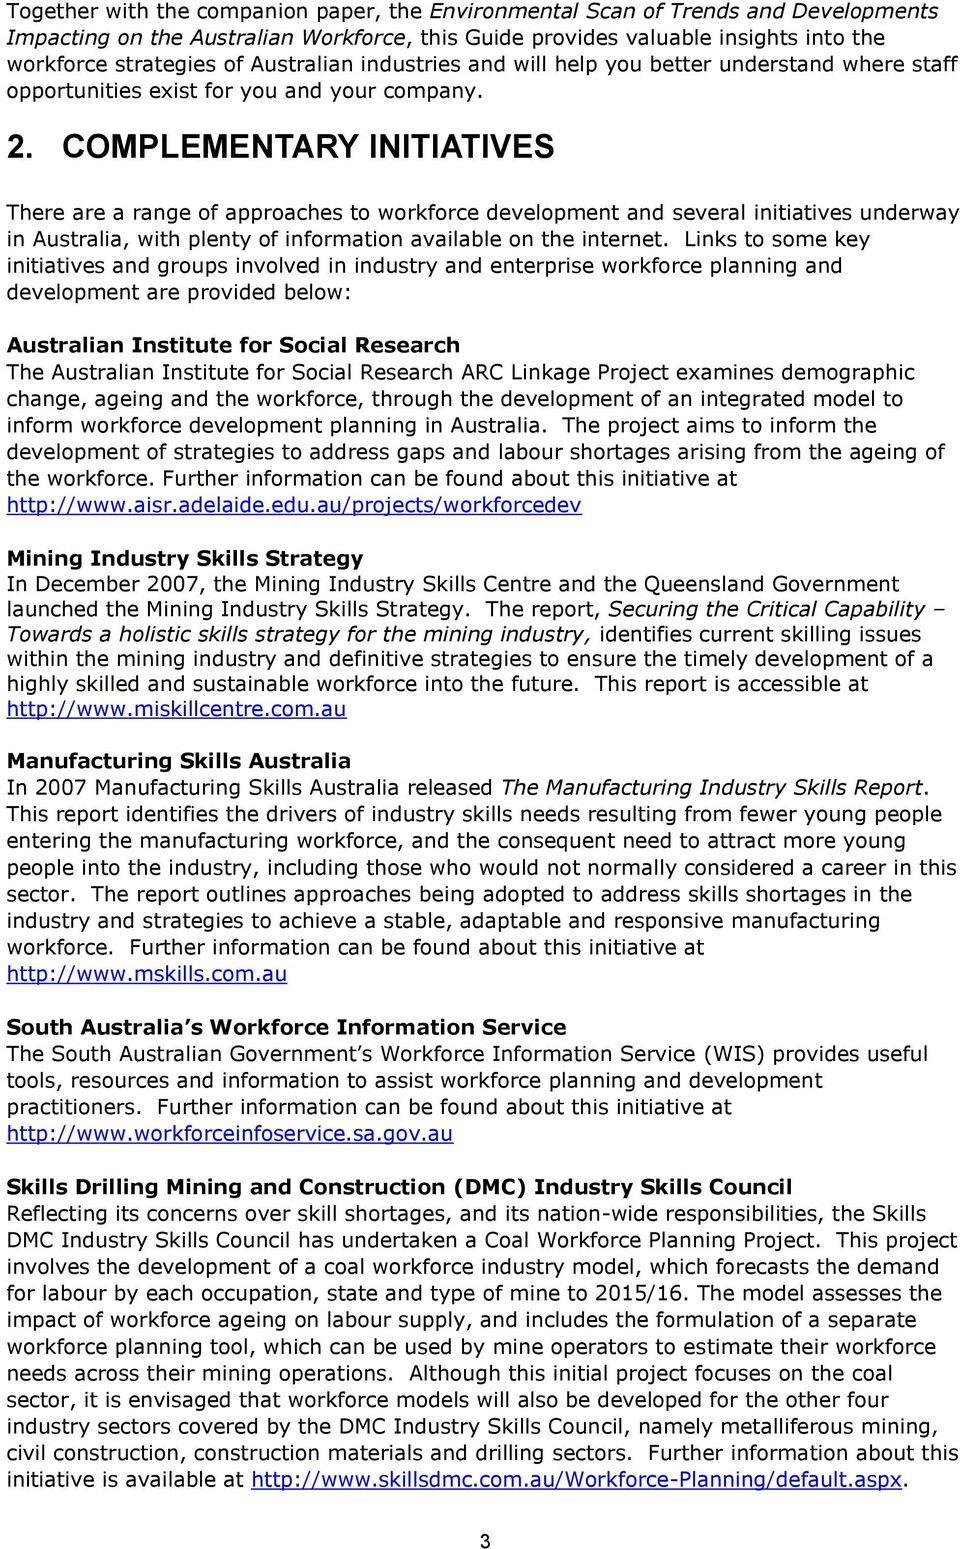 COMPLEMENTARY INITIATIVES There are a range of approaches to workforce development and several initiatives underway in Australia, with plenty of information available on the internet.